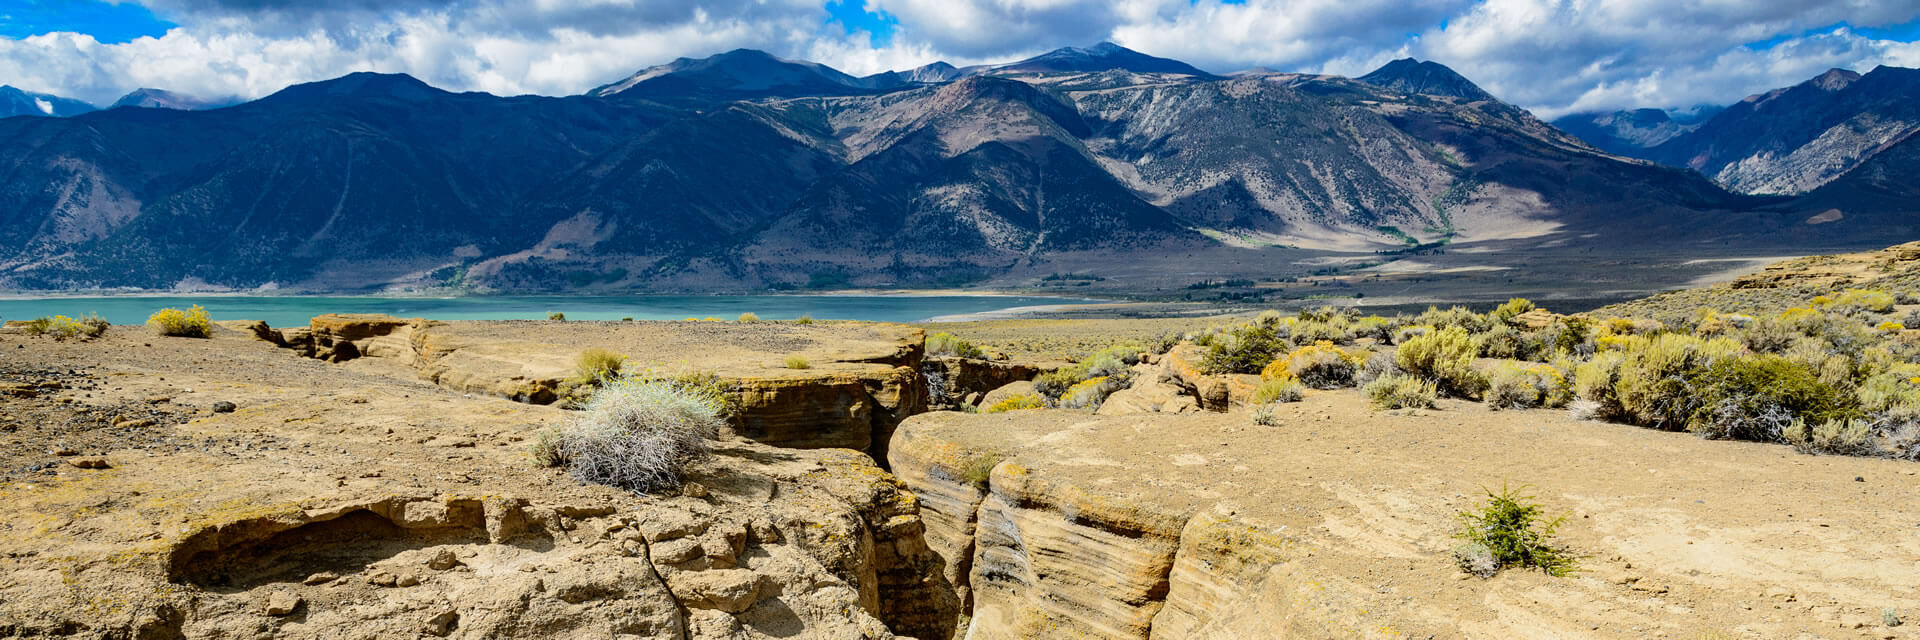 Black Point fissure with Mono Lake and the Sierra Nevada mountains